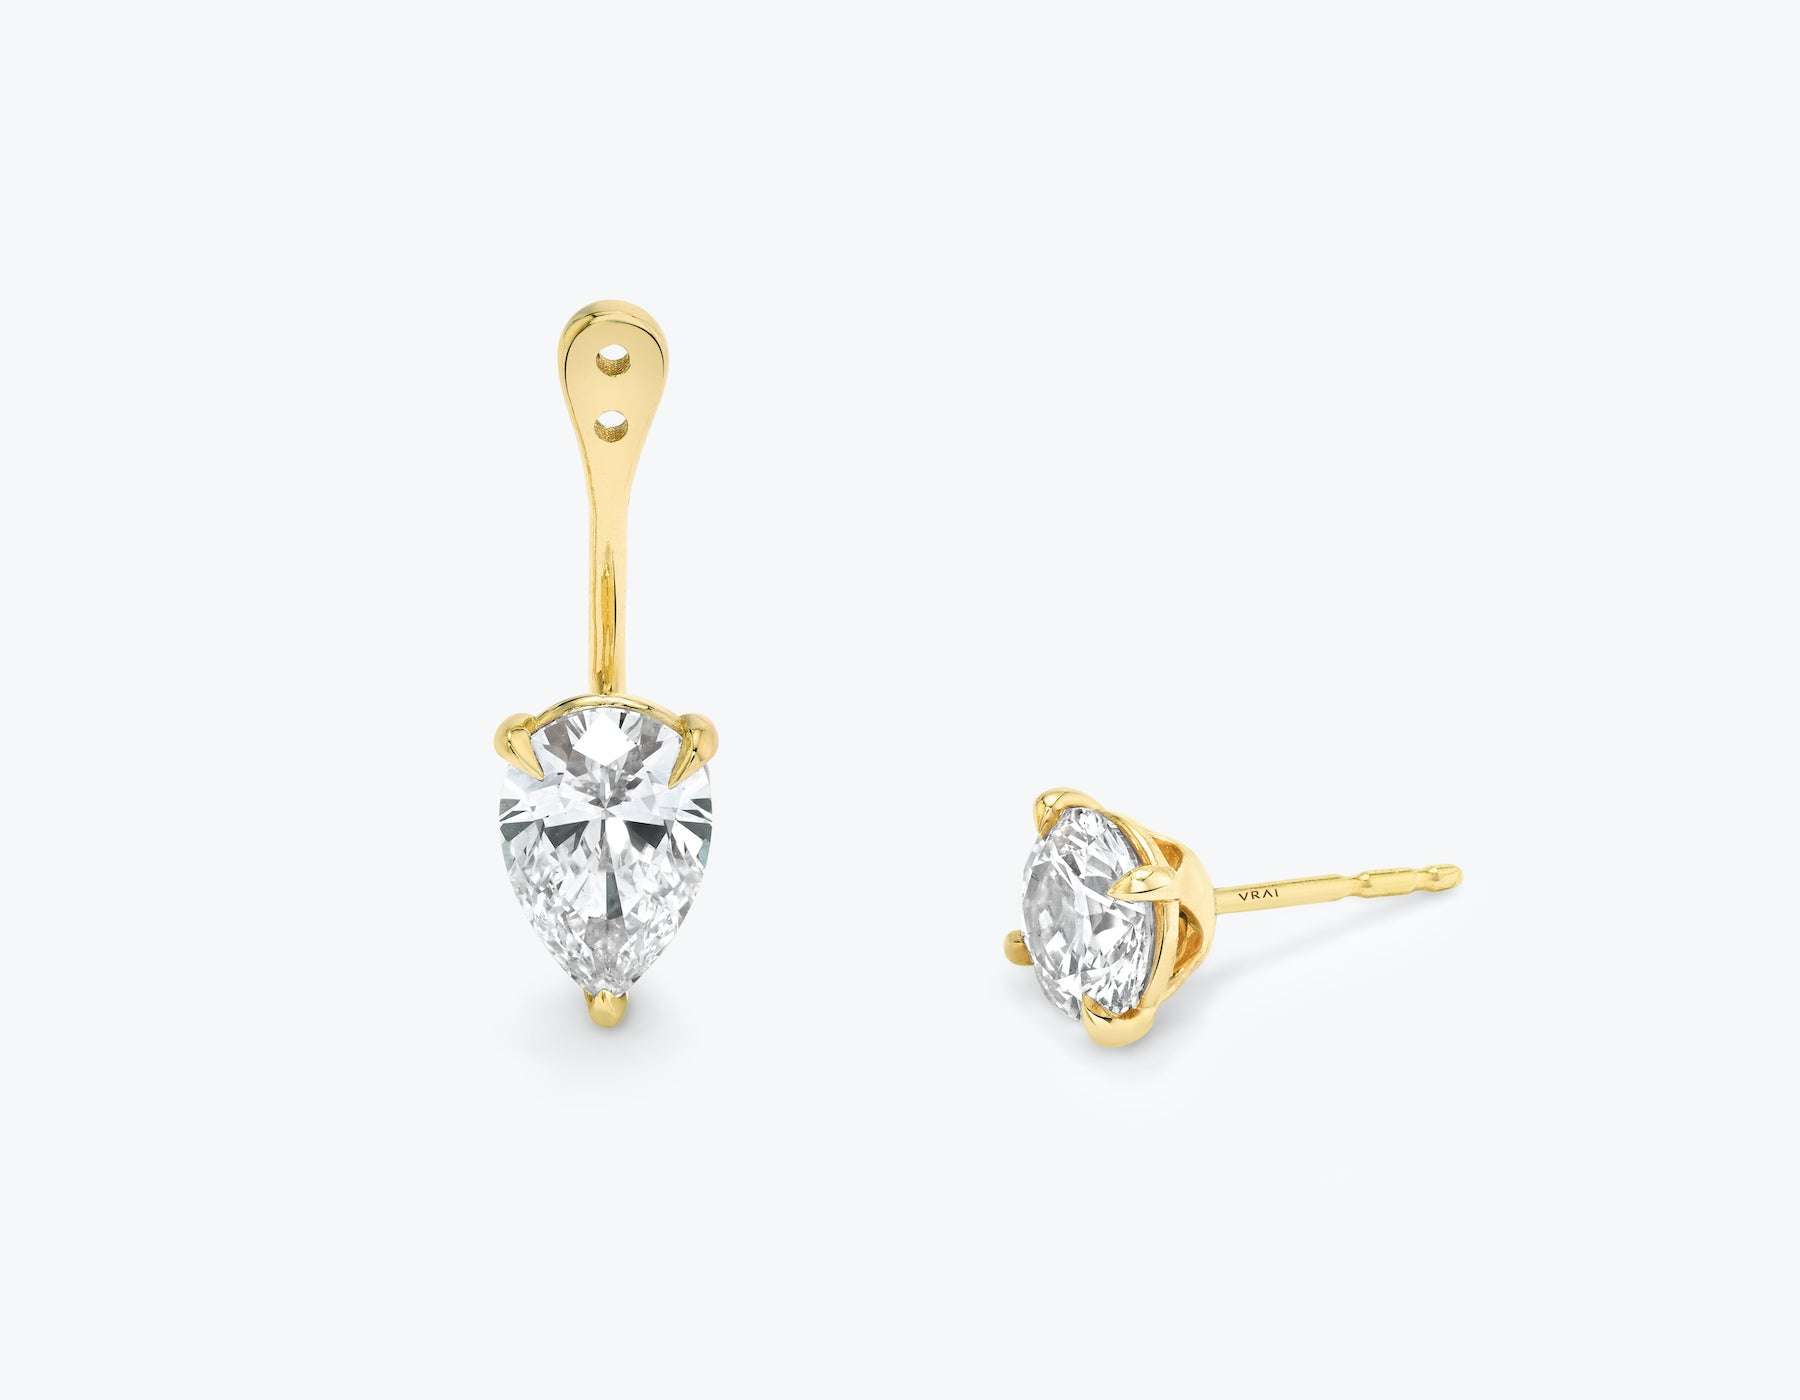 Vrai solitaire pear diamond drop ear jackets made in 14k solid gold with sustainably created diamonds with round solitaire diamond stud, 14K Yellow Gold